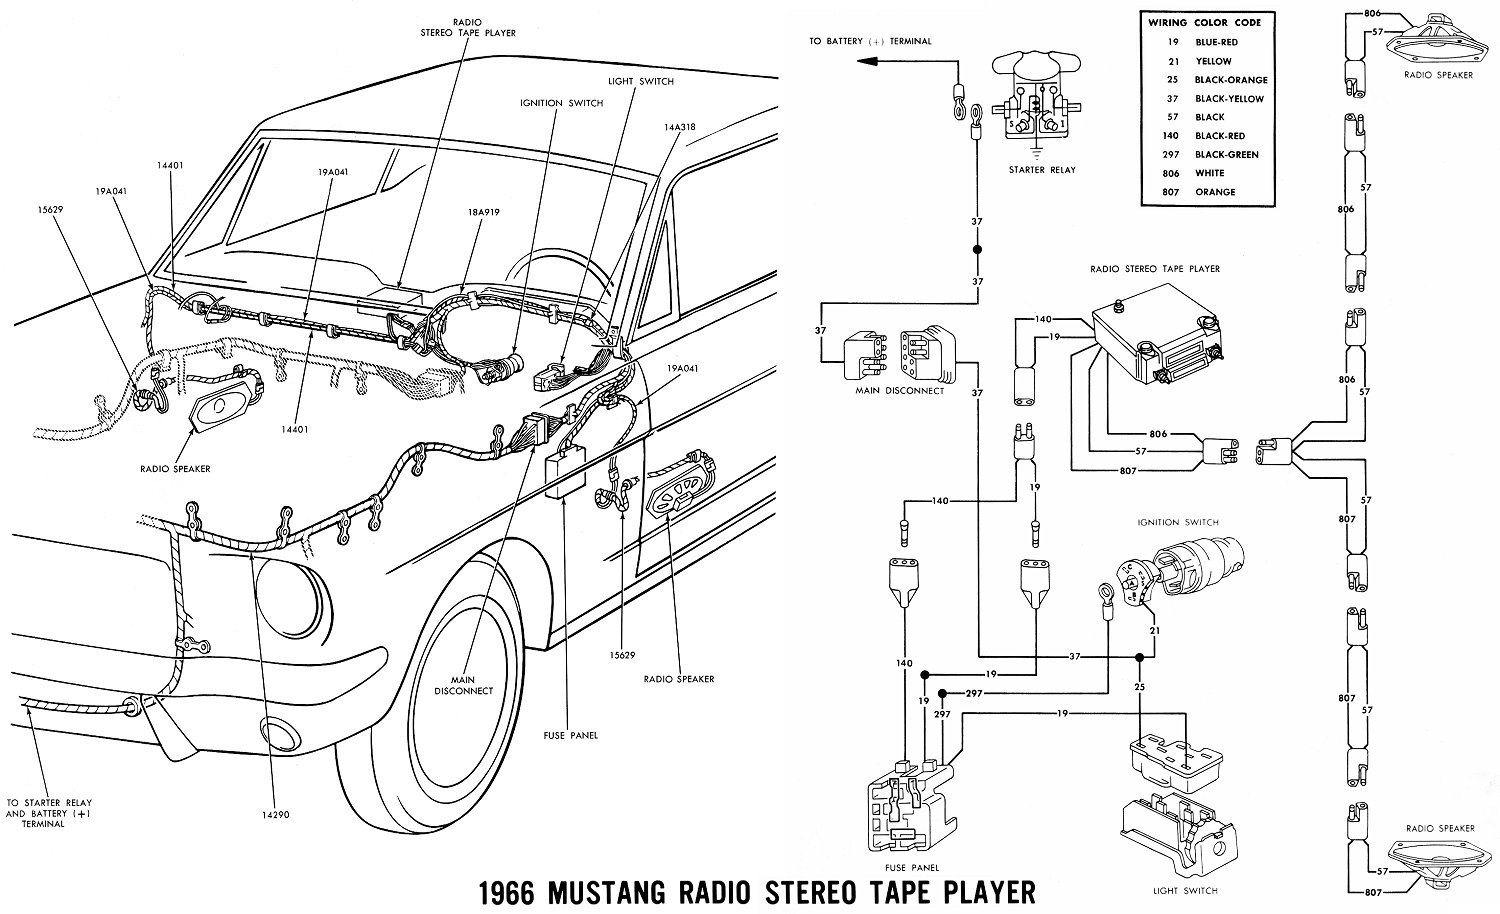 1966 Mustang Wiring Diagrams Average Joe Restoration 2001 Ford Power Window Diagram Sm66ste